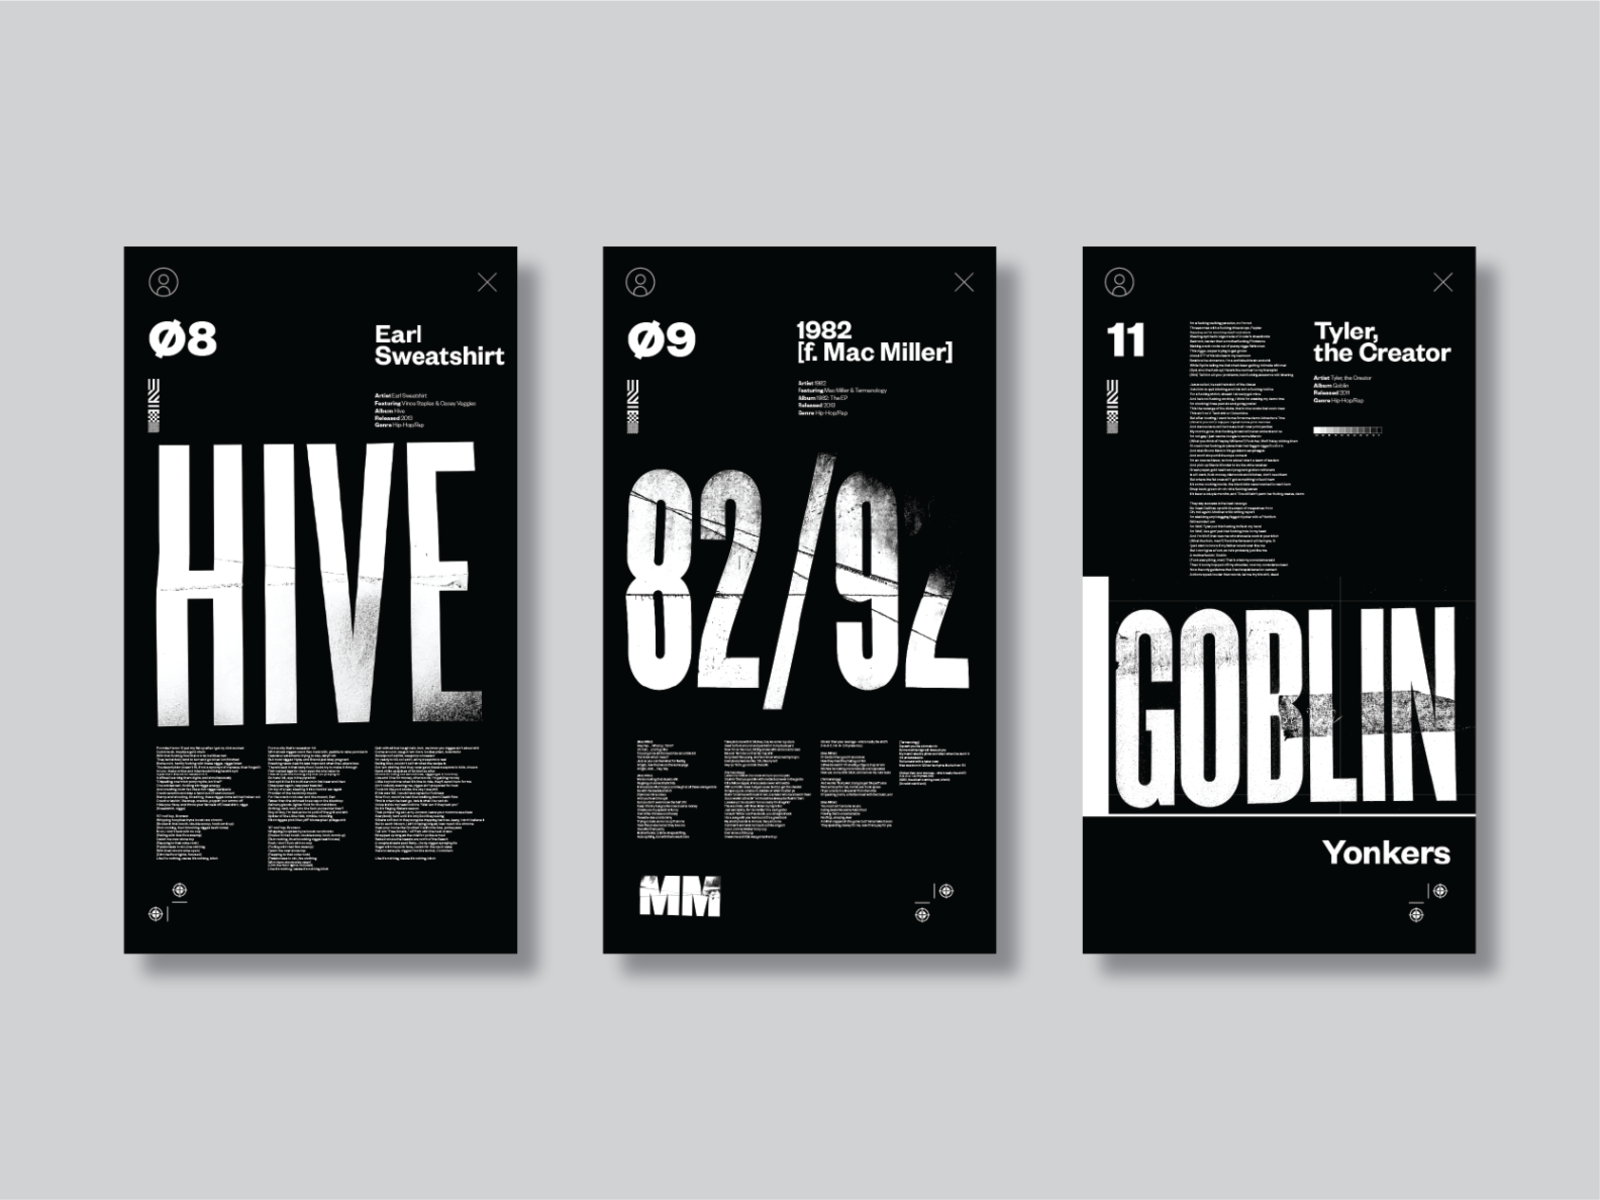 Digital Music Posters By Anthony Stimola On Dribbble